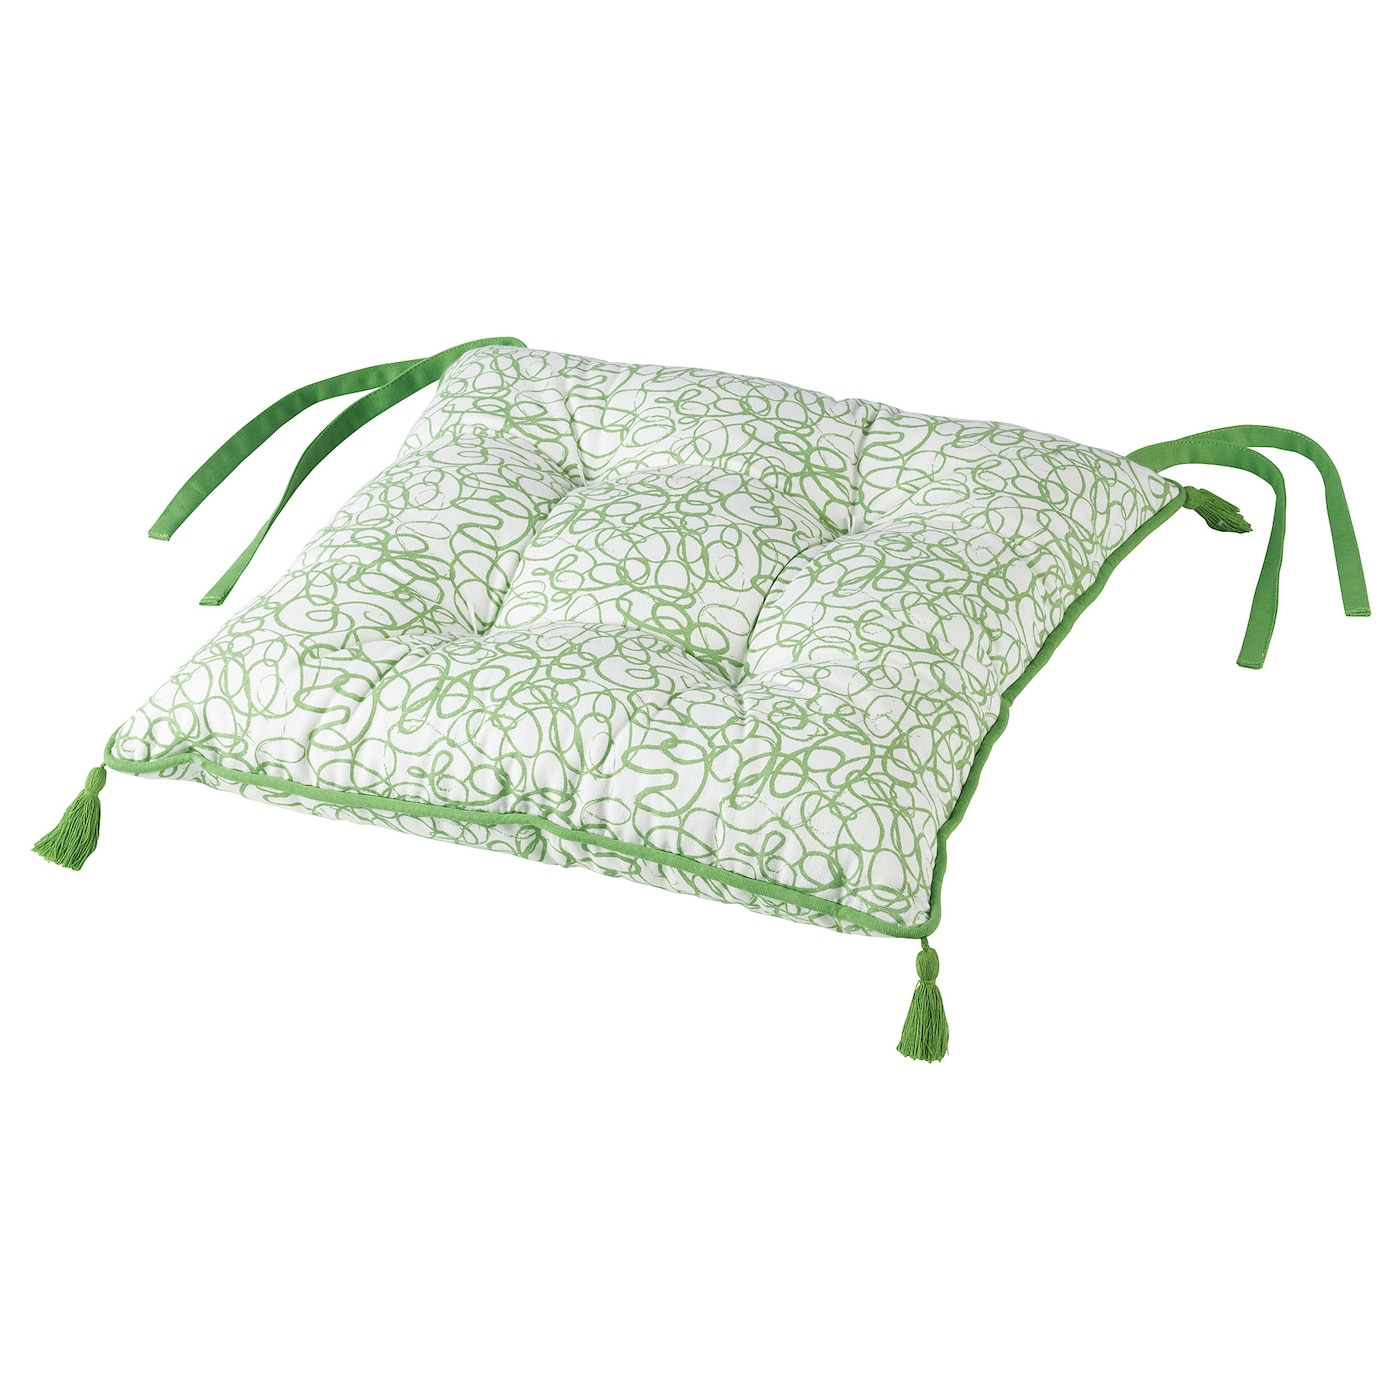 B\u00d6RJE from Ikea-pattern /& ebooksewing Instructions Cover Chair pad